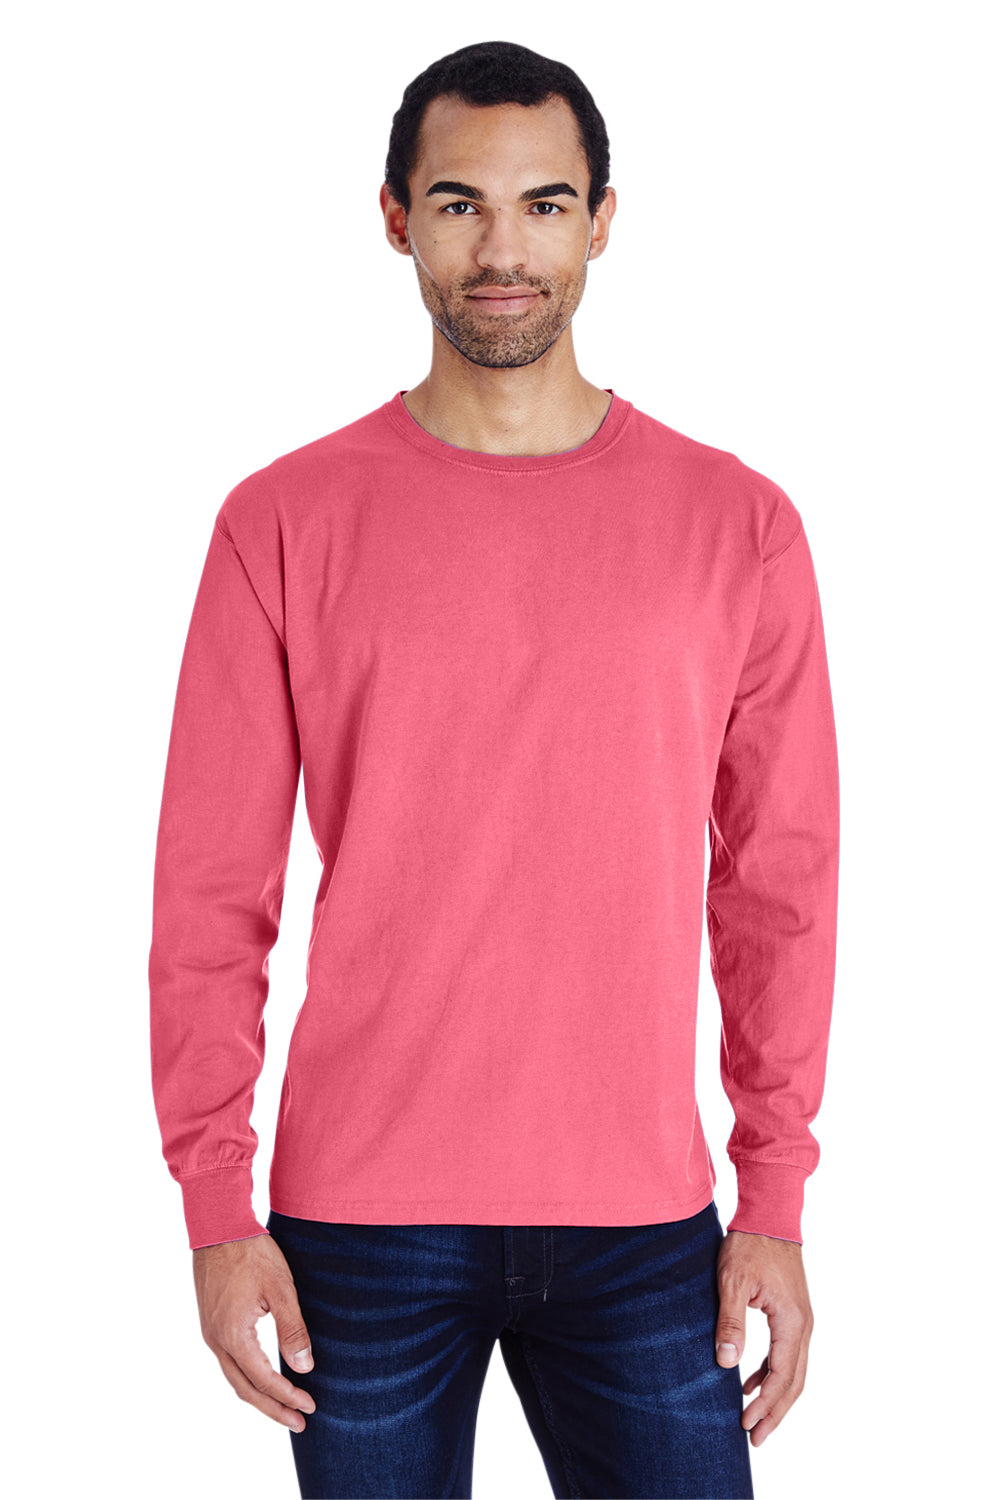 ComfortWash By Hanes GDH200 Mens Long Sleeve Crewneck T-Shirt Crimson Red Front